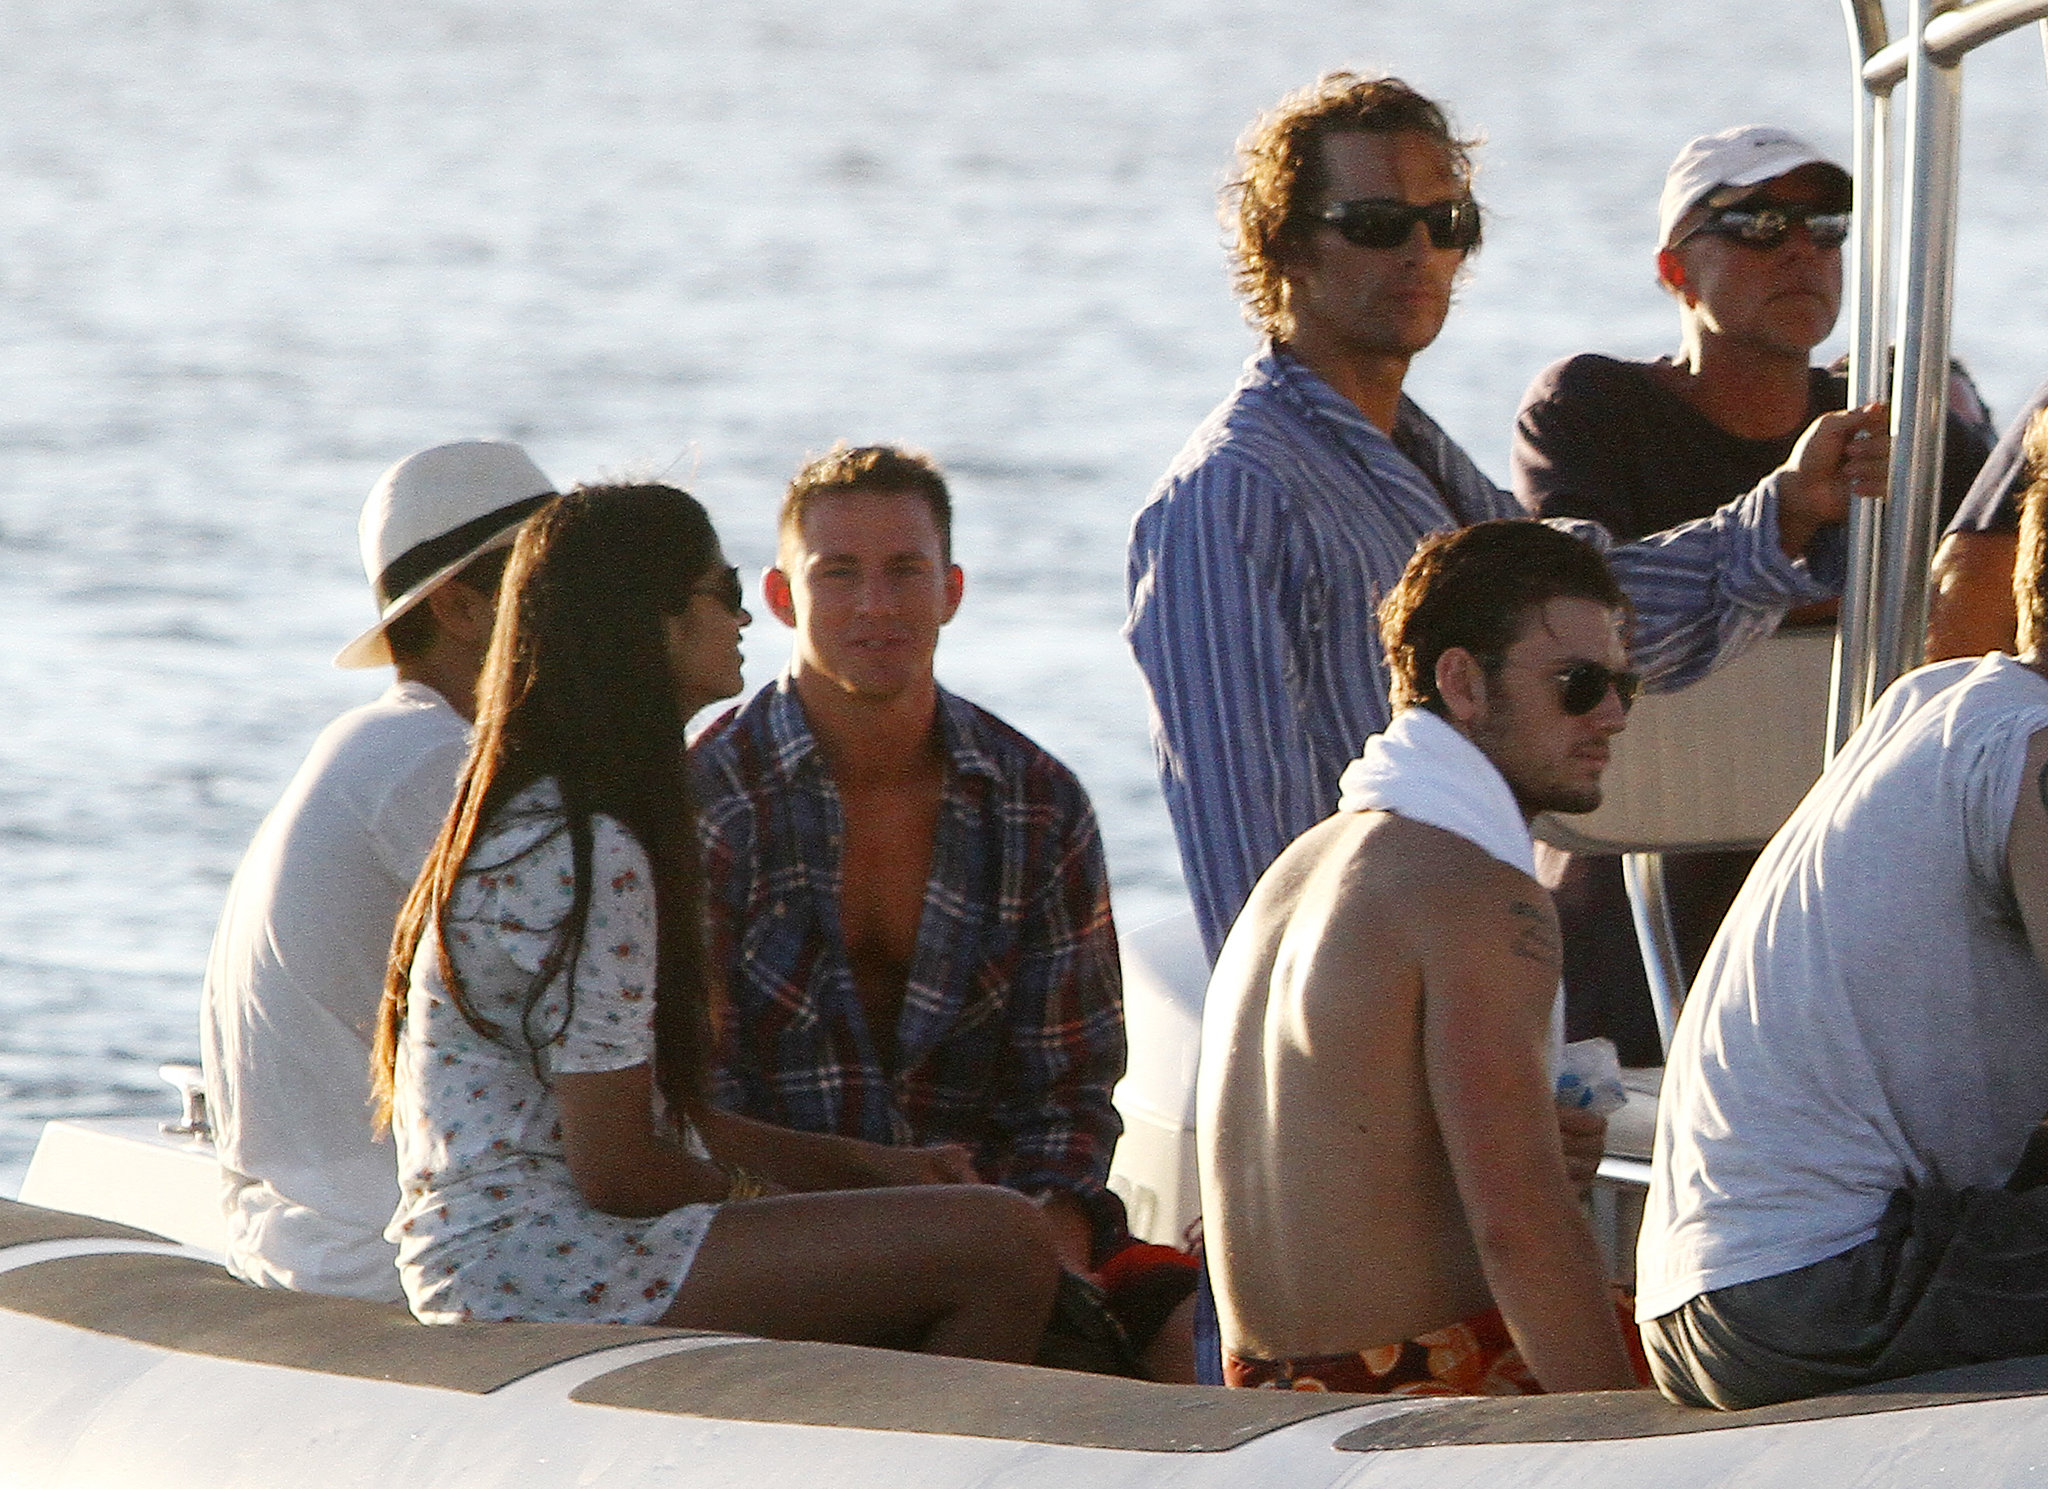 Matthew McConaughey and Channing Tatum got a lift back to the beach after a long day of filming Magic Mike at sea in October 2011.